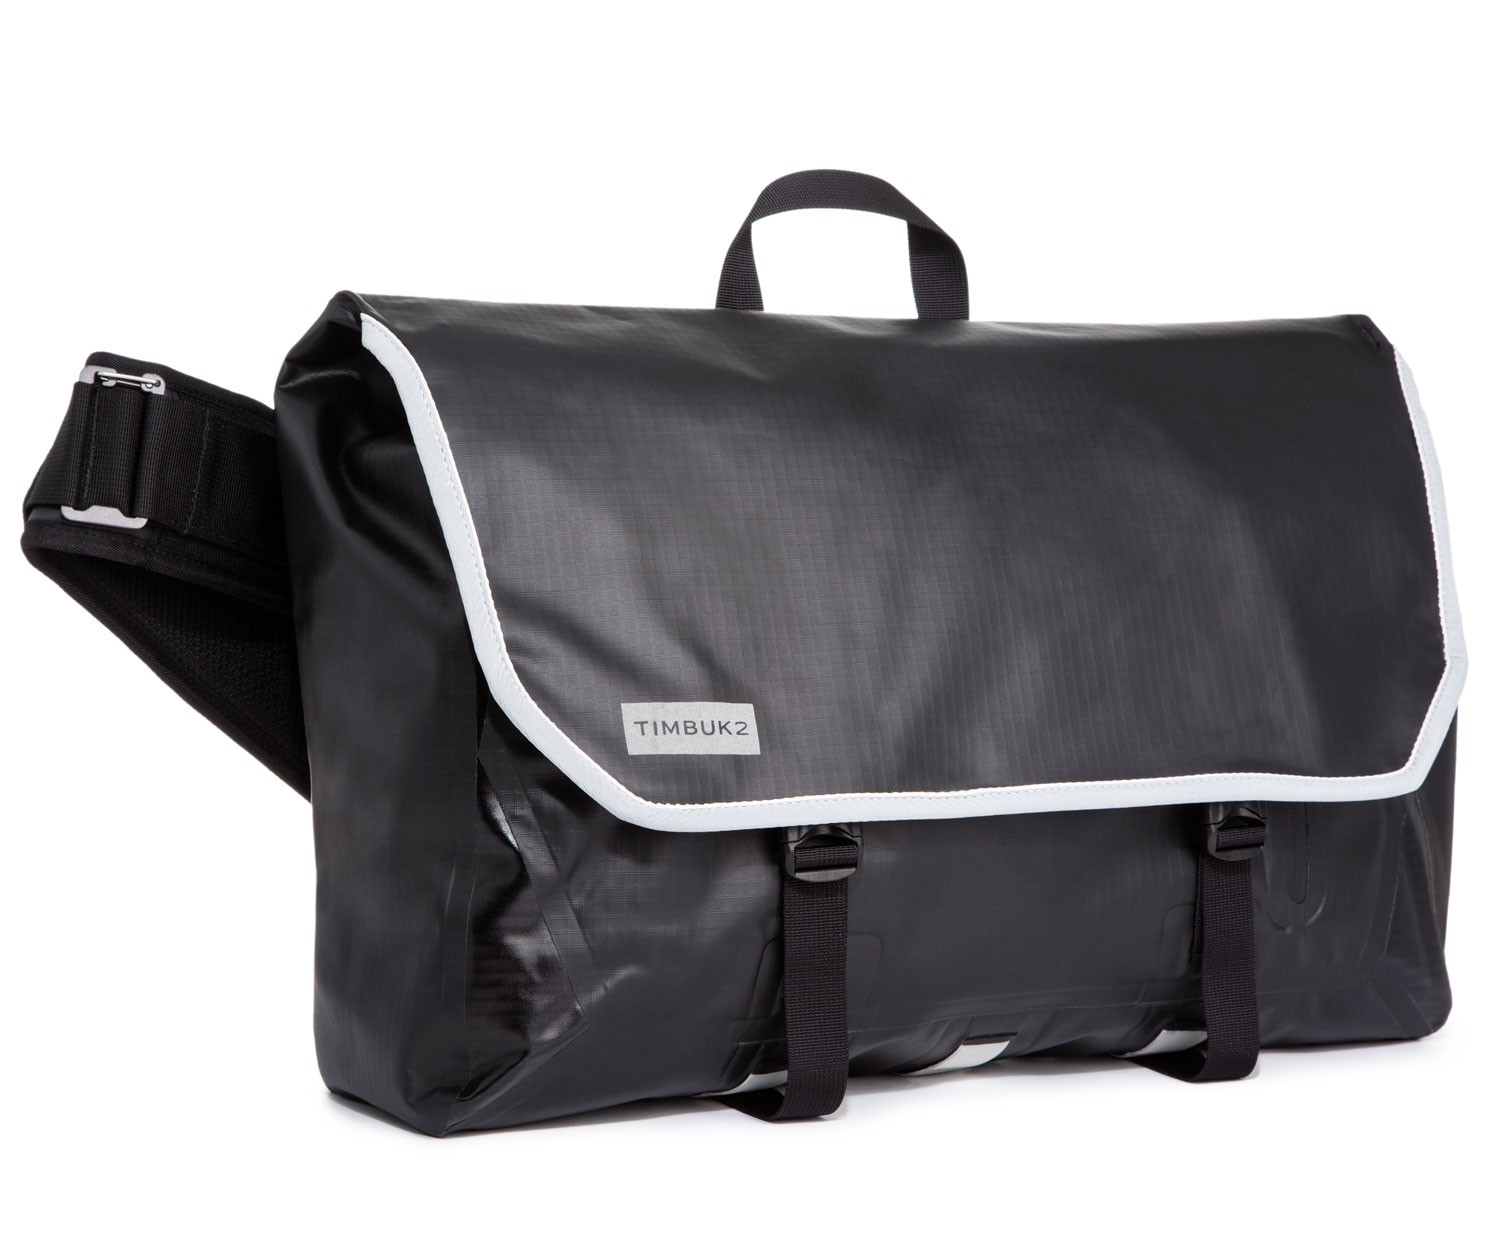 Especial Primo Waterproof Messenger Bag | Bike & Travel | Timbuk2